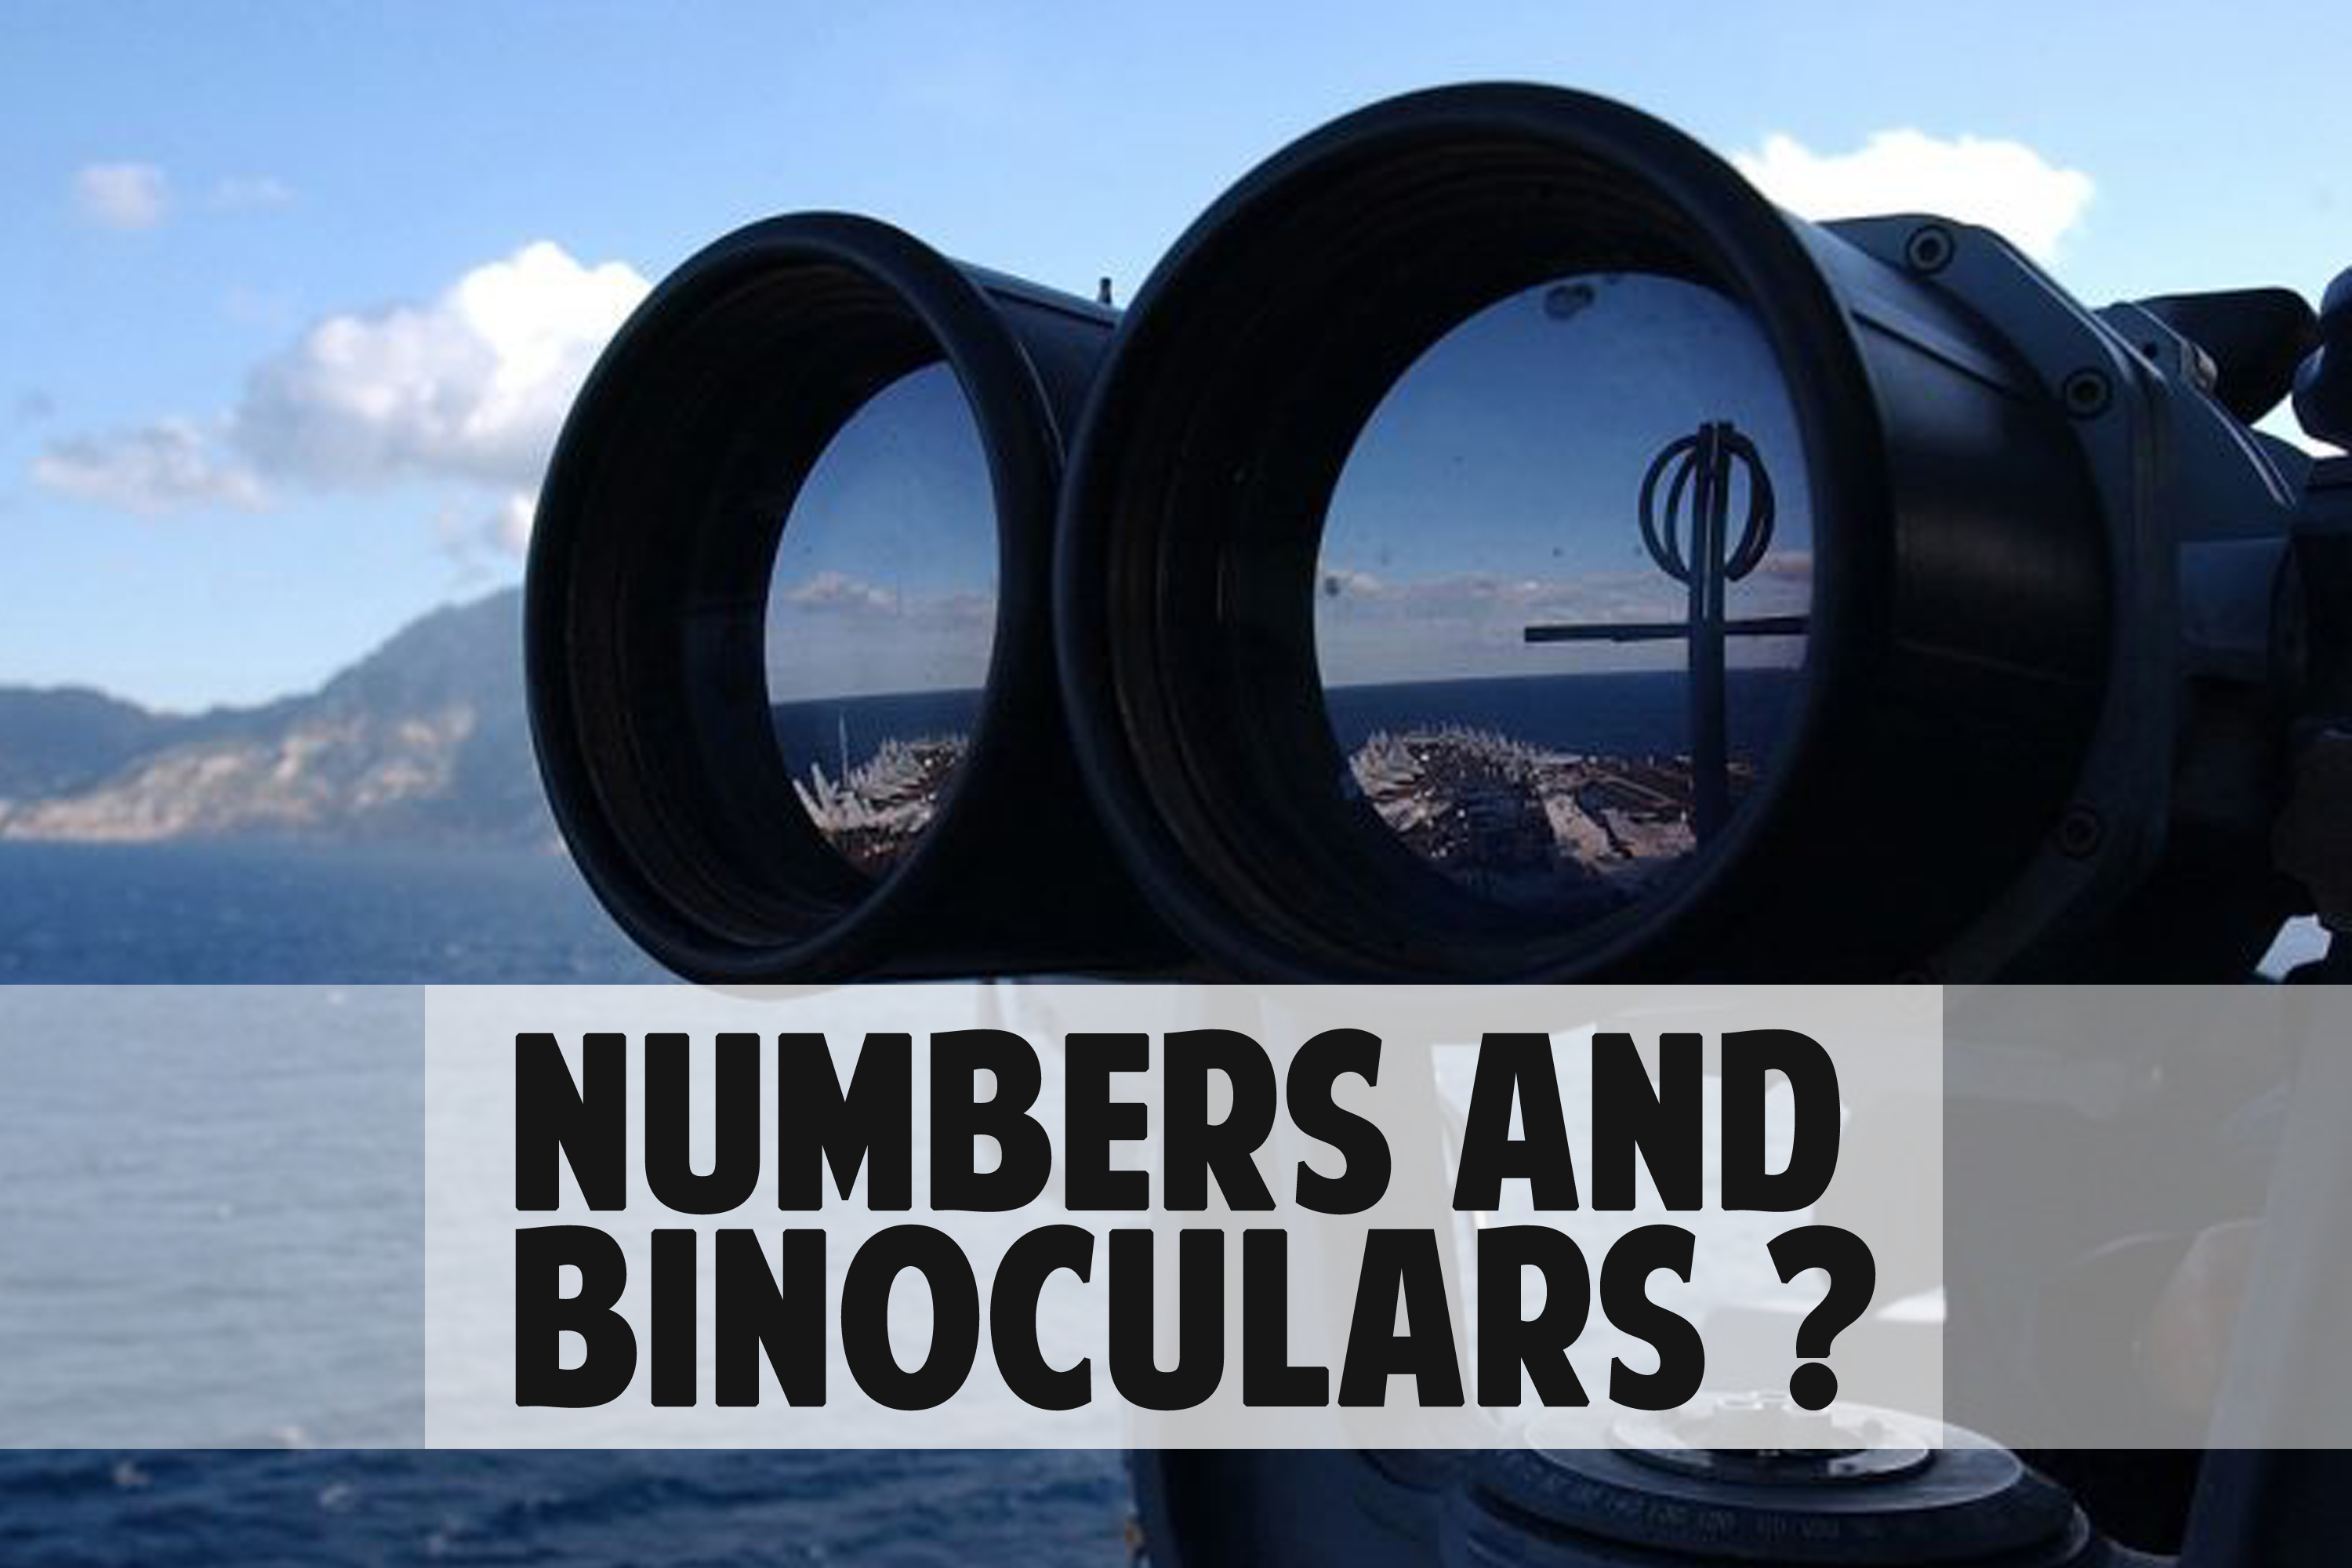 What do numbers mean in binoculars